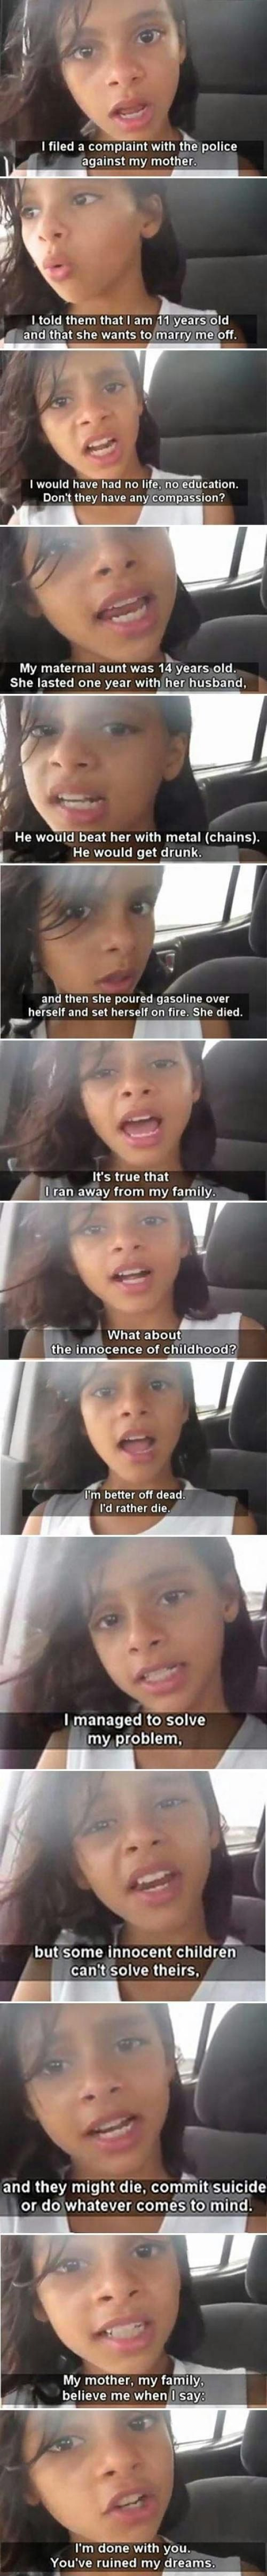 Powerful words coming from such a young girl.